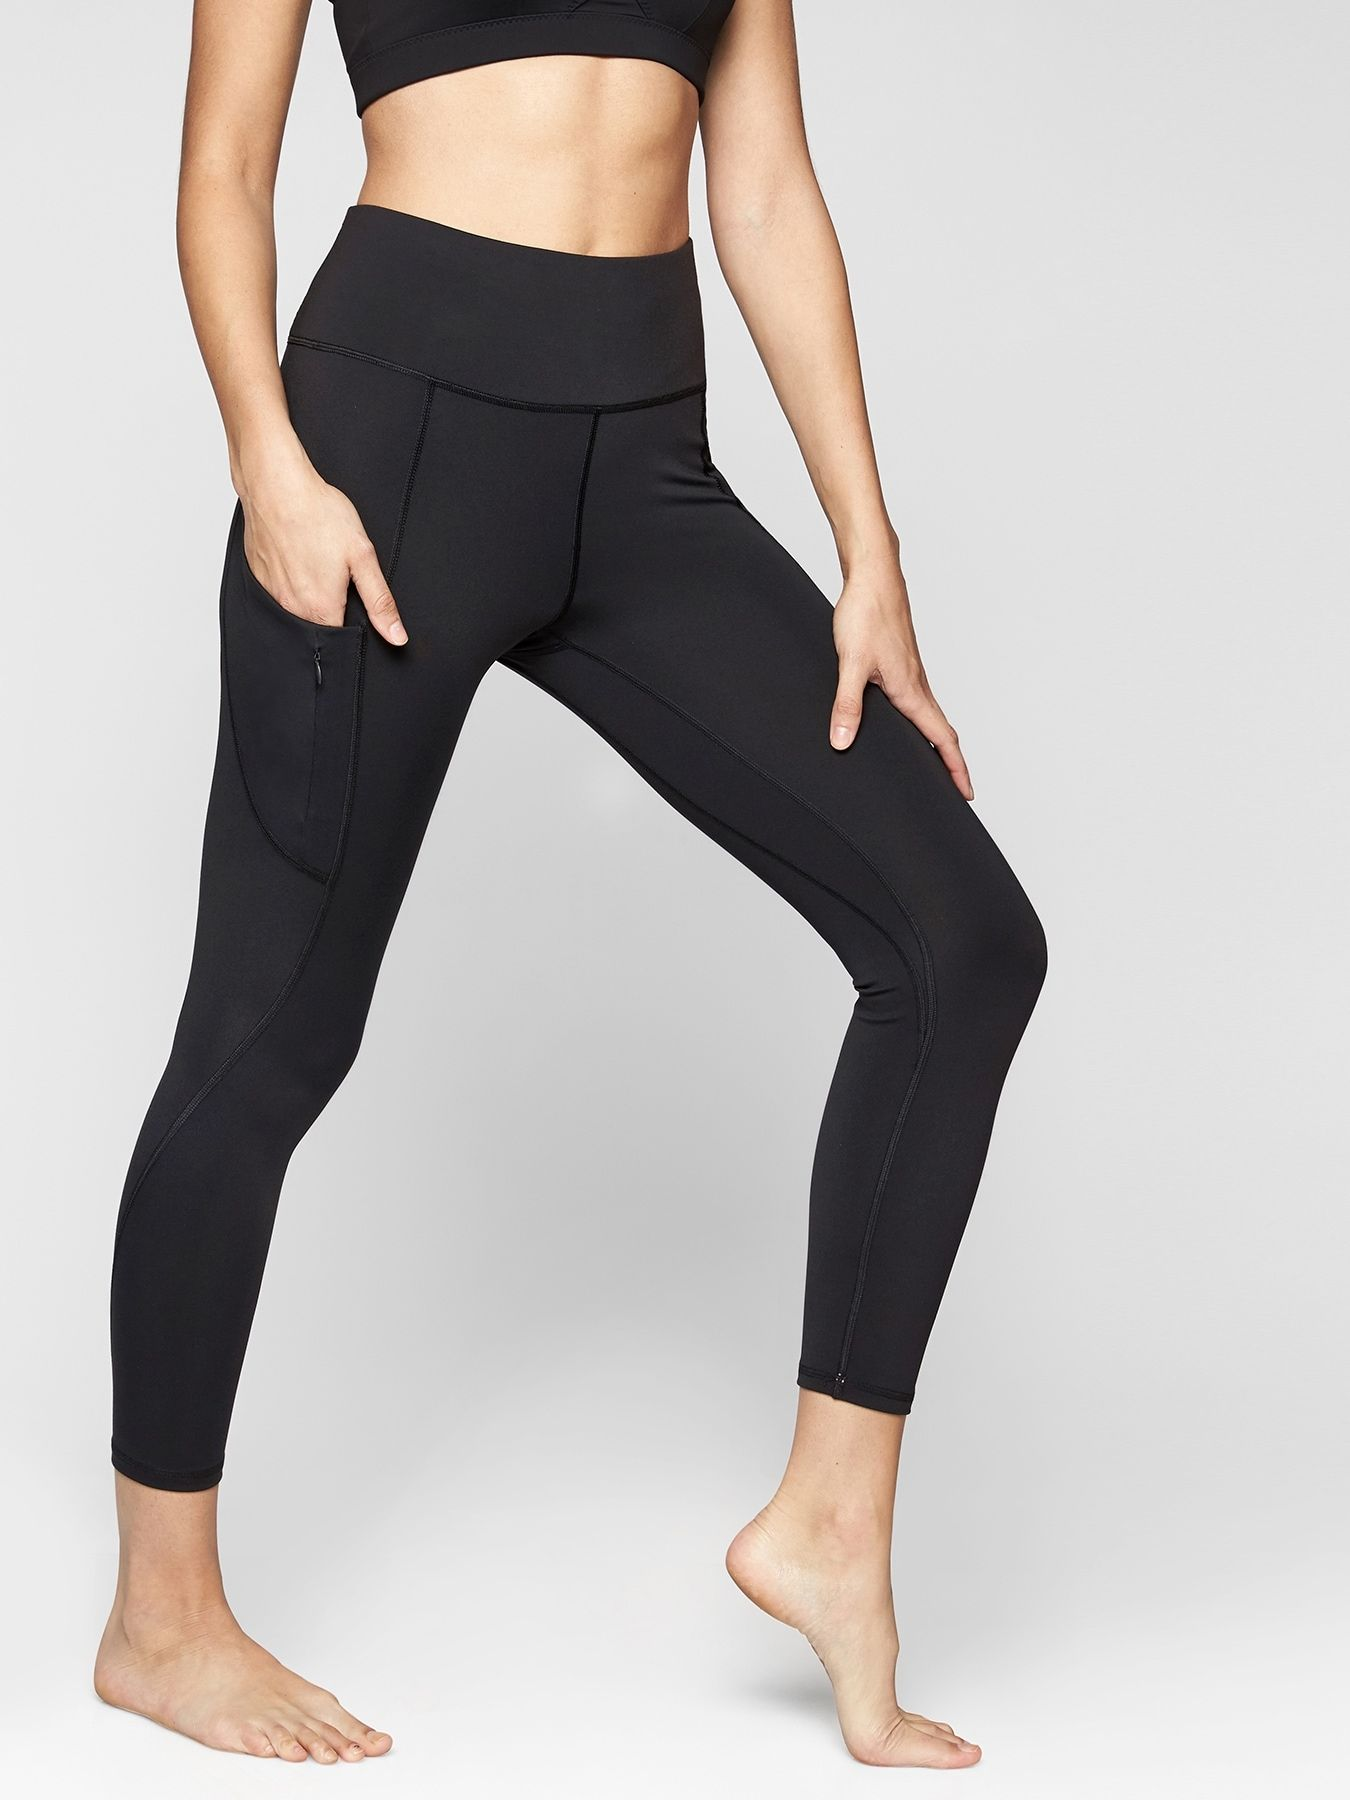 6d5a288bdb7cc All In 7/8 Tight | Gift Ideas 2018 | Workout leggings, Tights, Best ...